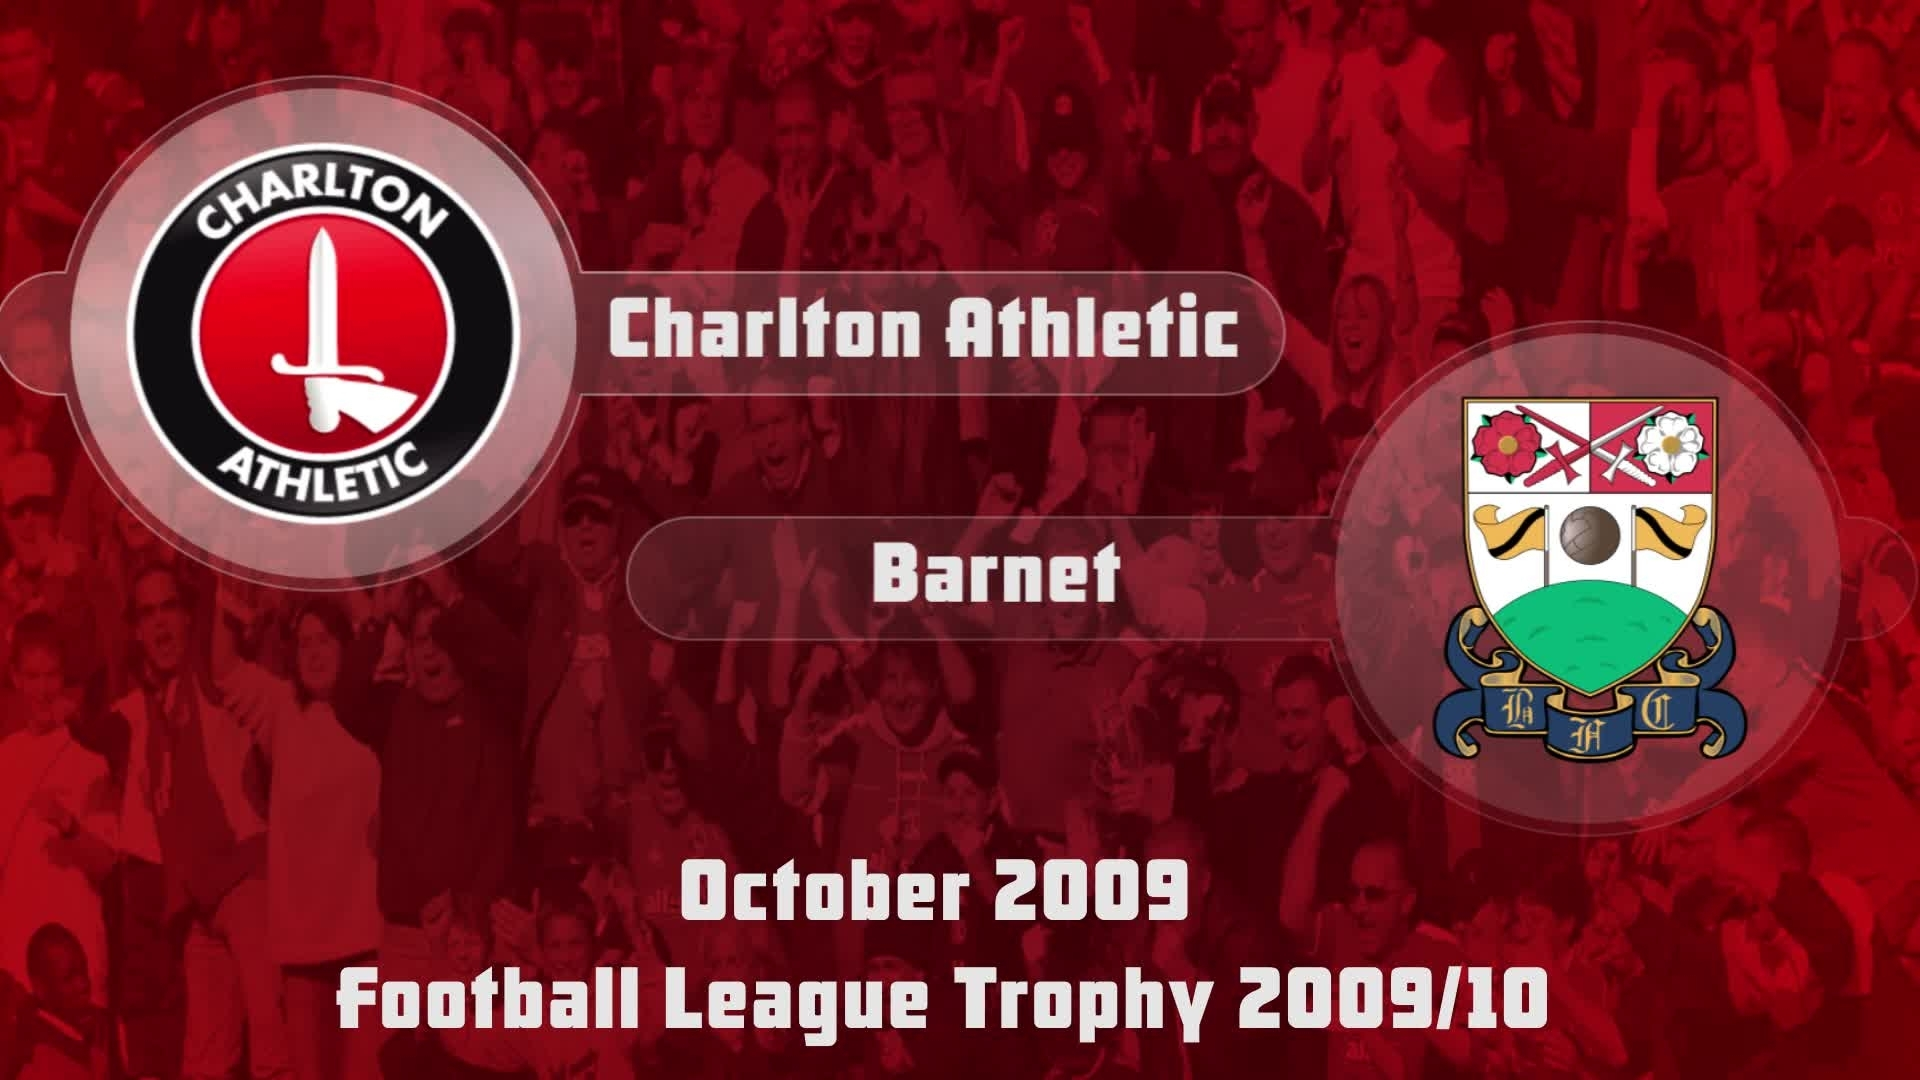 13 HIGHLIGHTS | Charlton 4 Barnet 1 (FL Trophy Oct 2009)